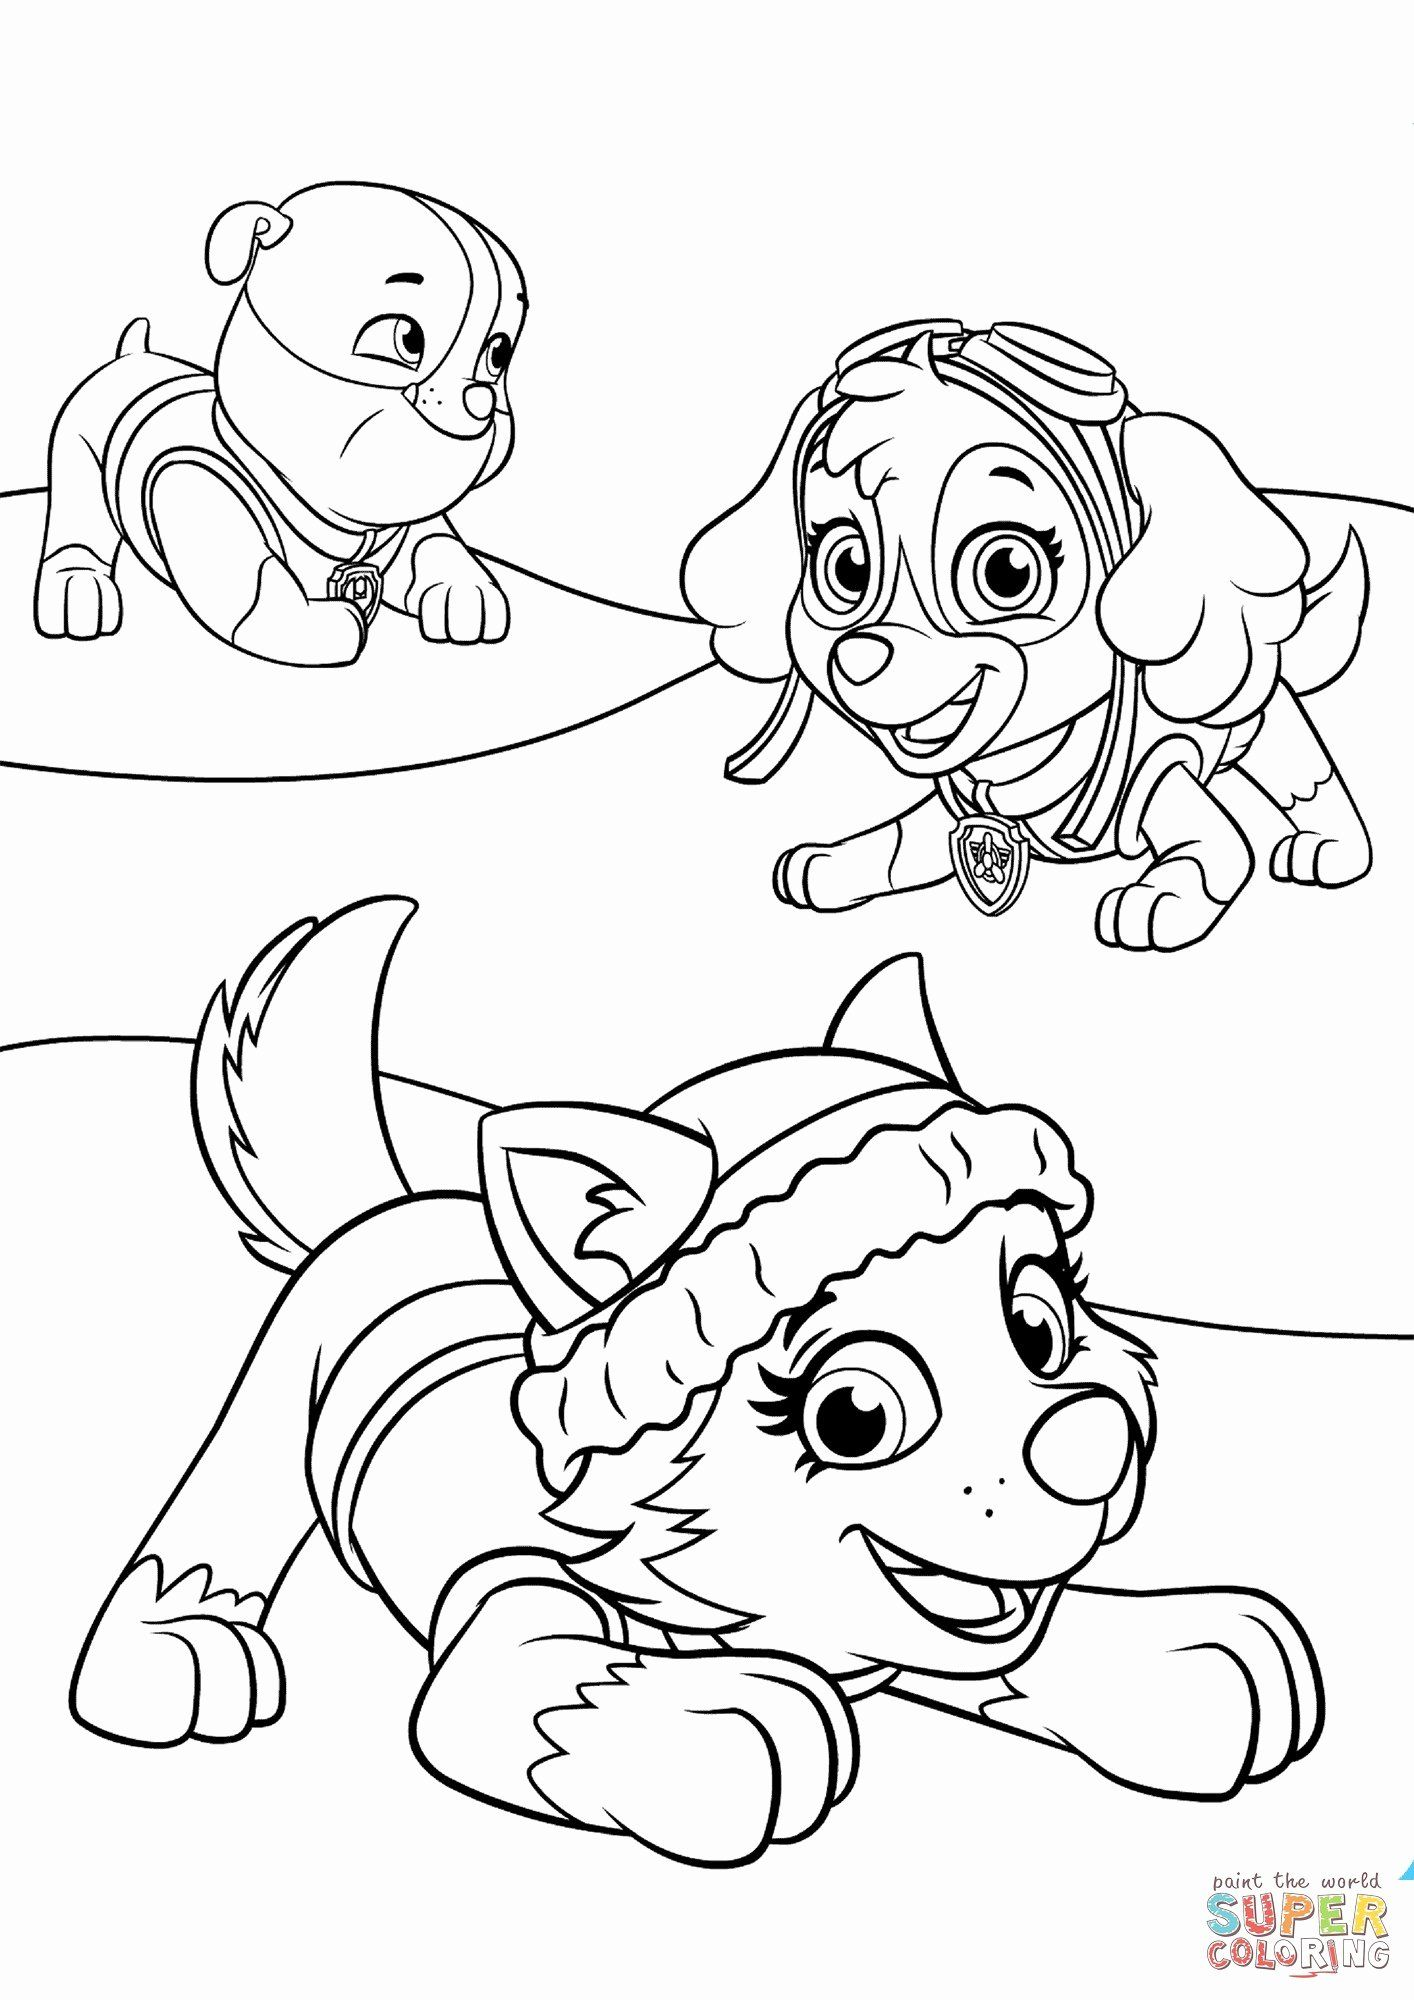 Paw Patrol Everest Coloring Page Beautiful Paw Patrol Coloring Pages Everest At Getcolorings In 2020 Paw Patrol Coloring Pages Paw Patrol Coloring Puppy Coloring Pages